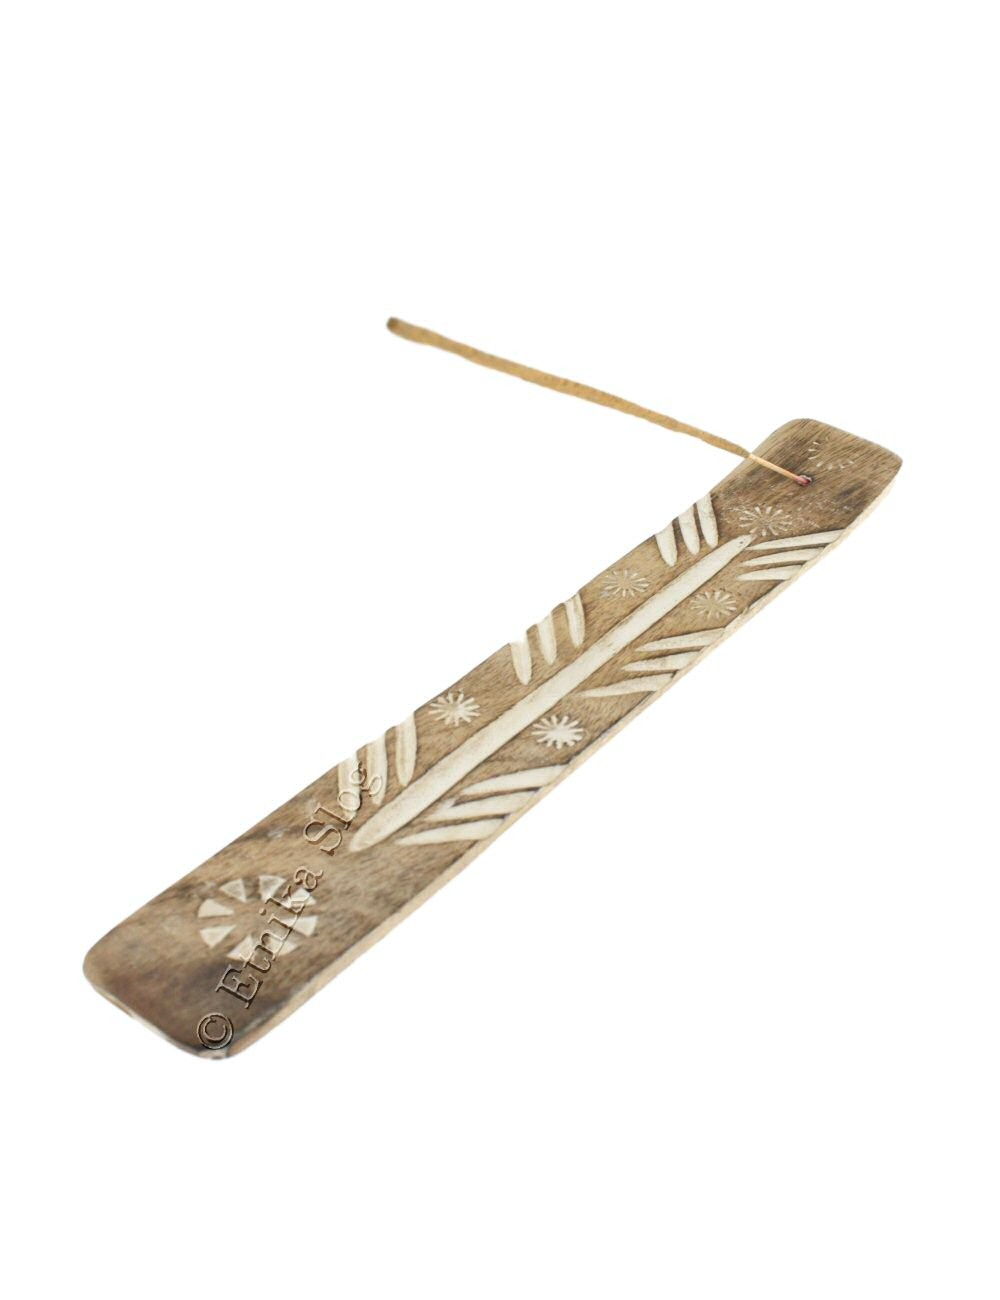 BOAT-SHAPED INCENSE HOLDERS PI-INL10 - Etnika Slog d.o.o.